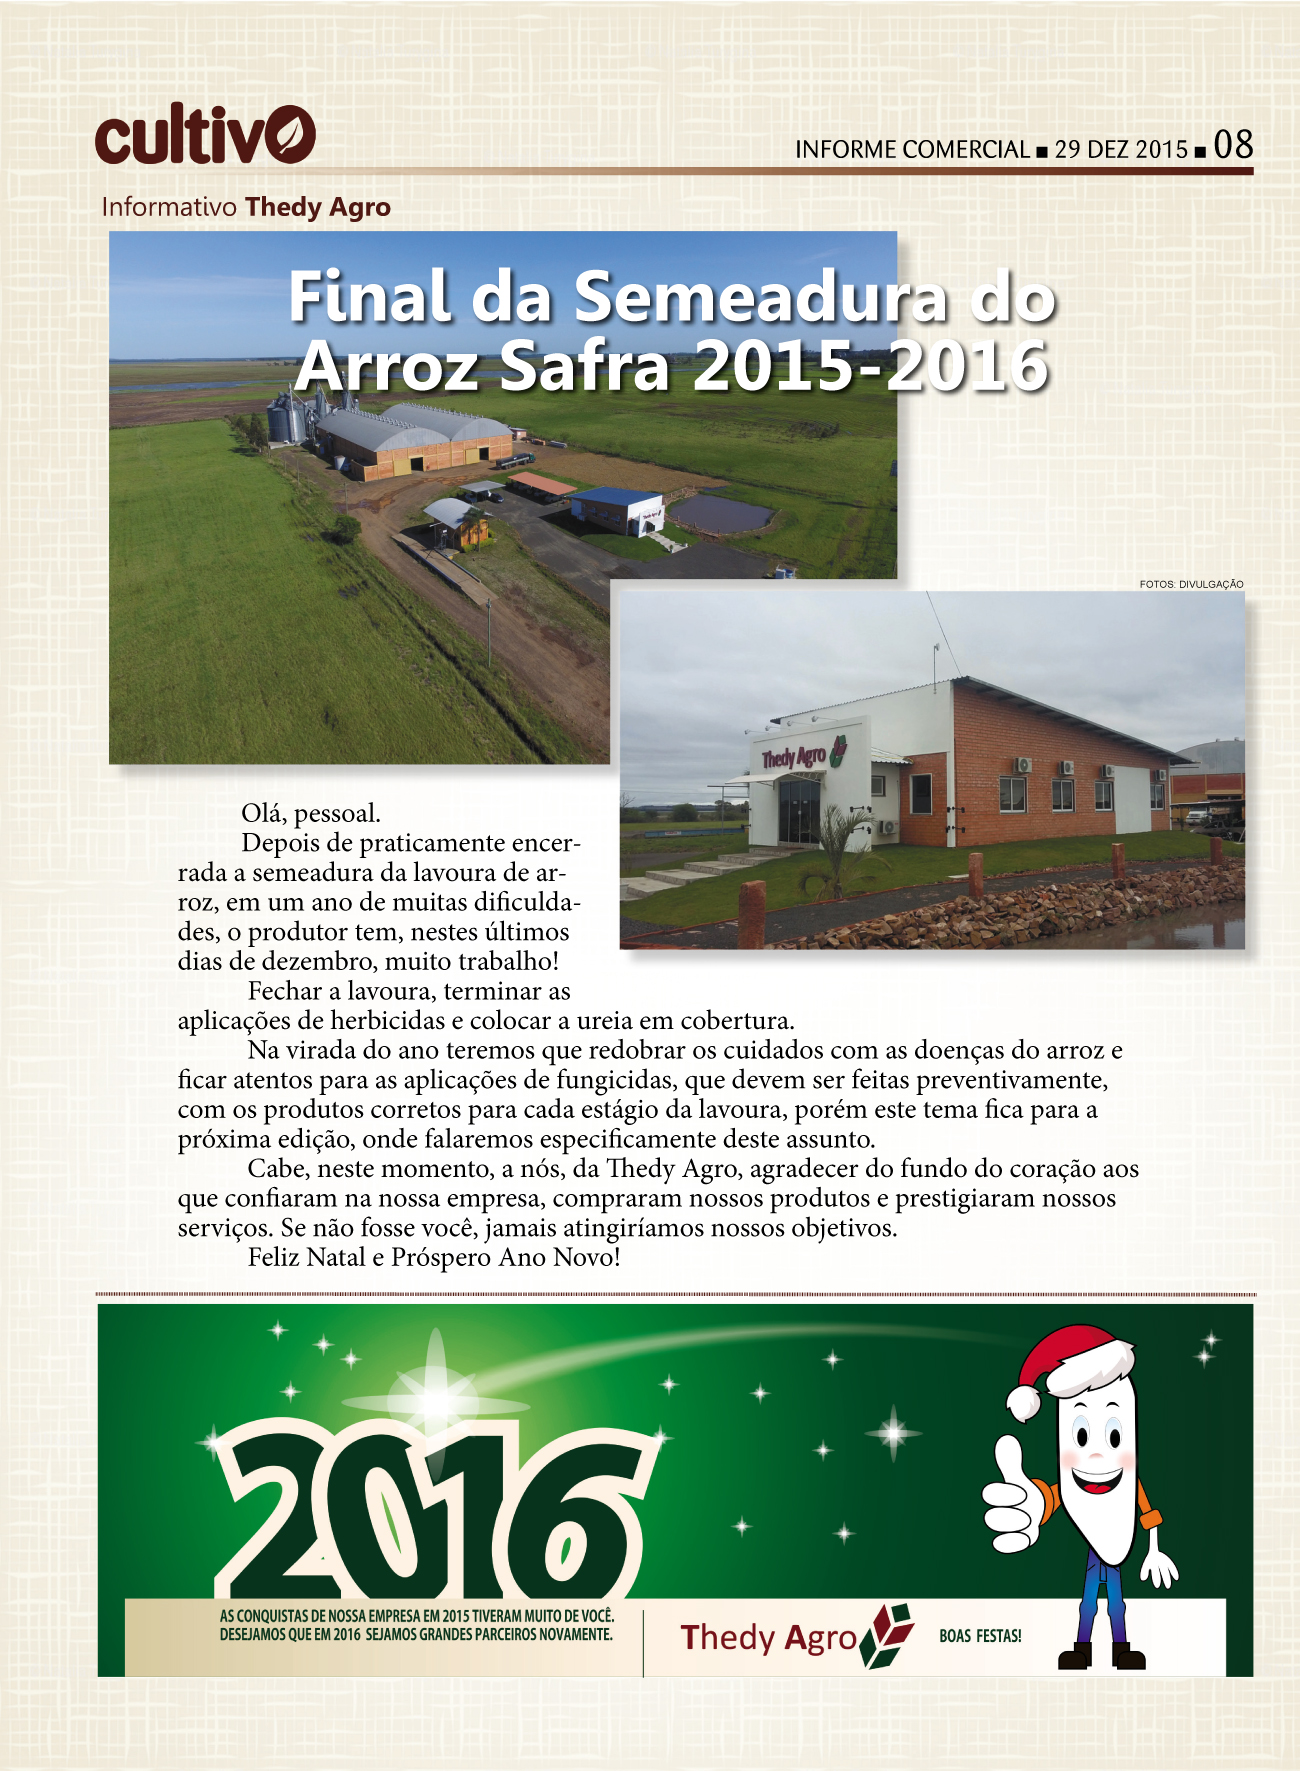 Noticia na ZH – Final de semeadura do Arroz safra 2015-2016